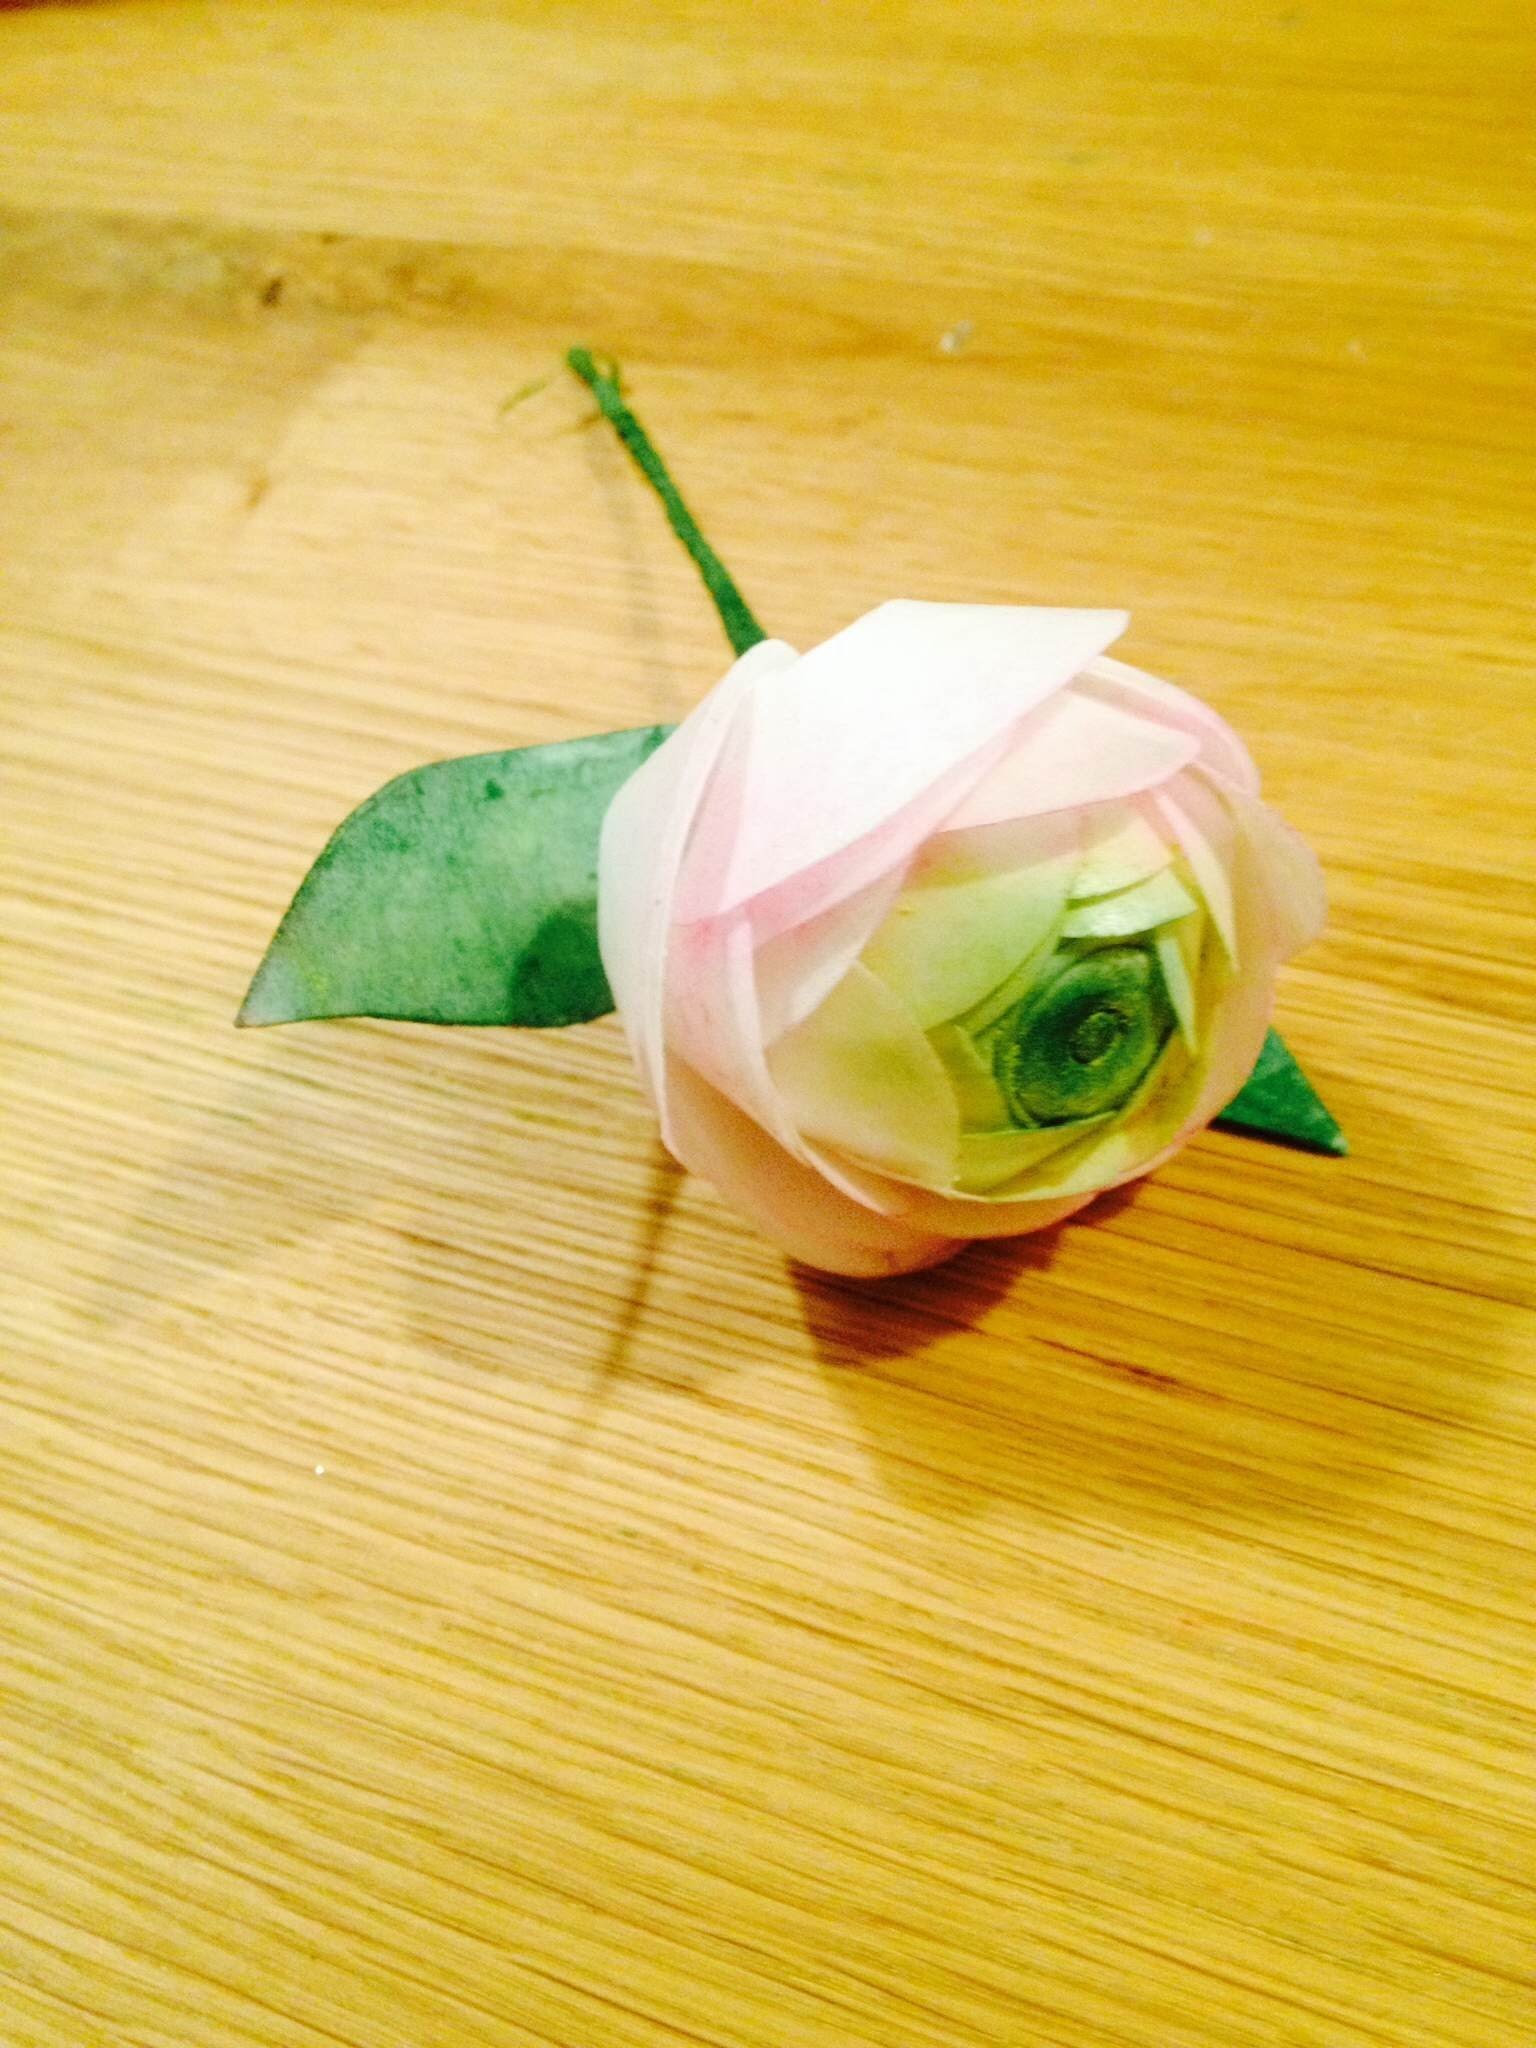 How to make Wafer Paper Ranunculus?